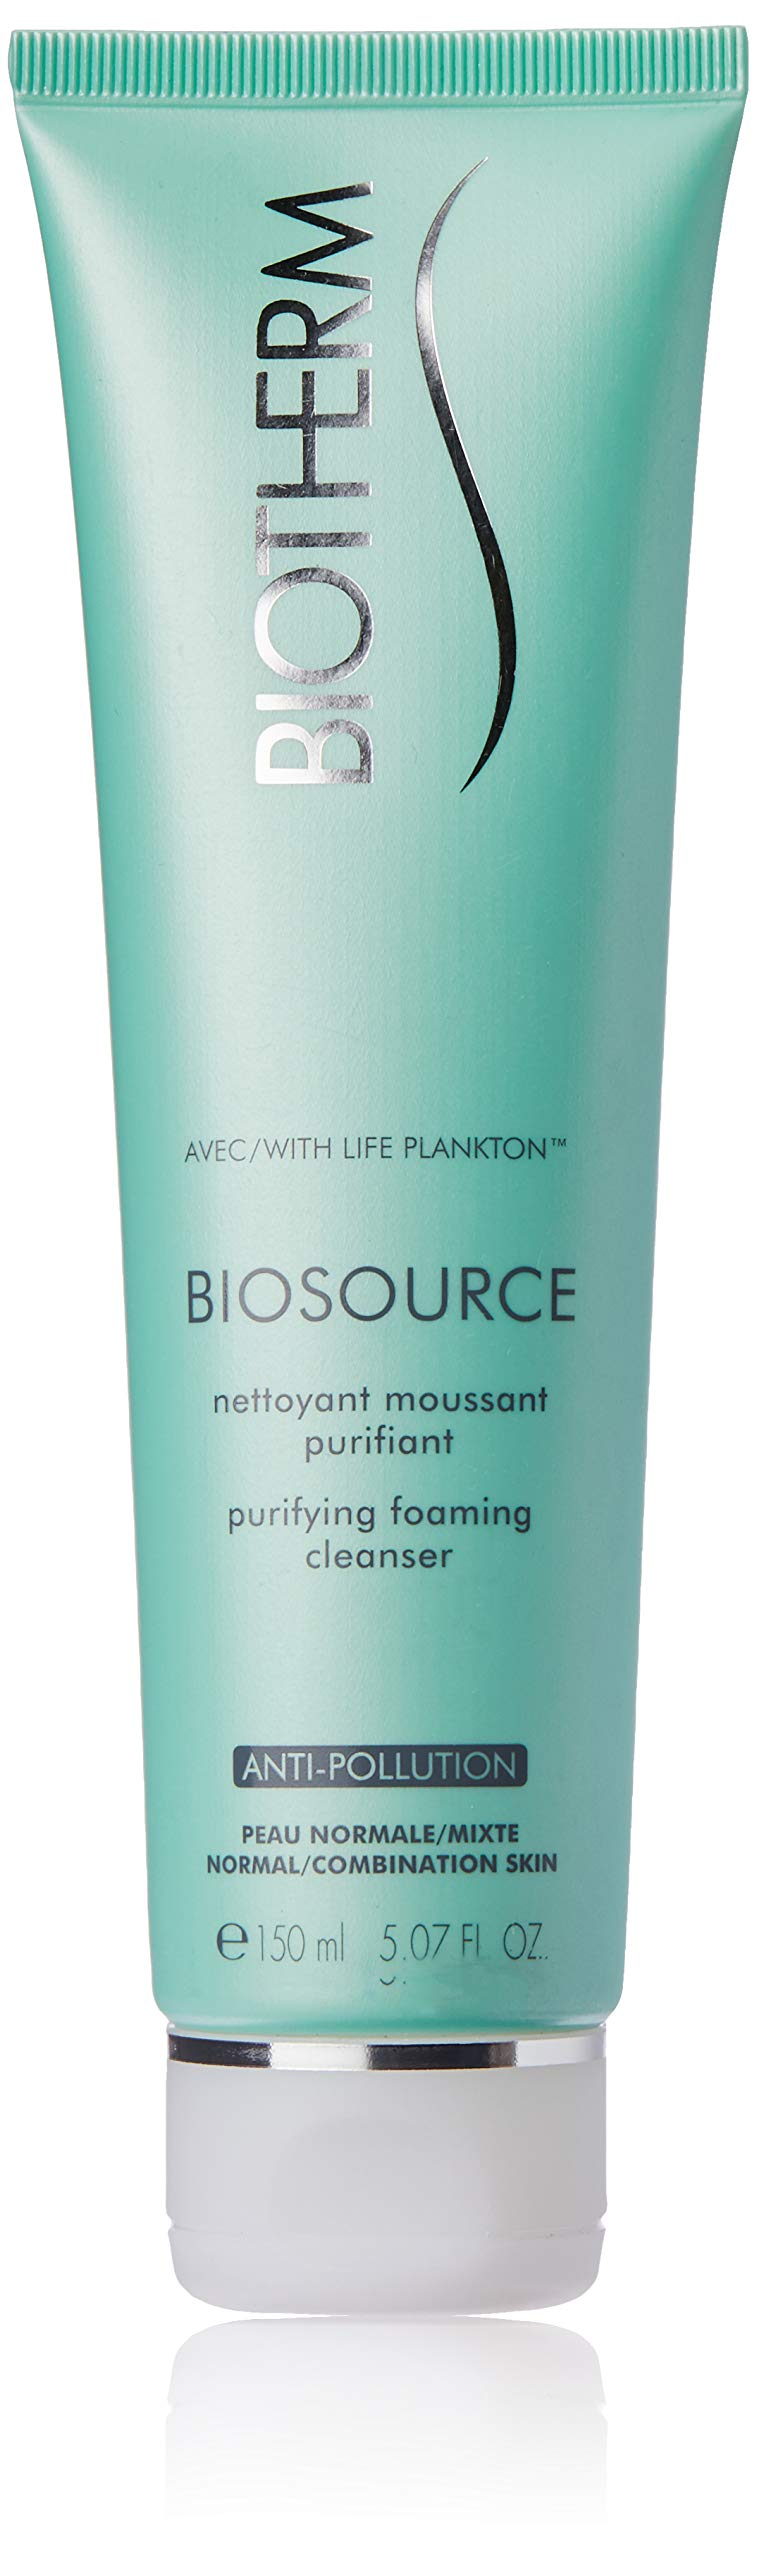 Biotherm Biosource Hydra-Mineral Cleanser Toning Mousse (N-C) Skin for Unisex, 5.07 Ounce by Biotherm (Image #1)